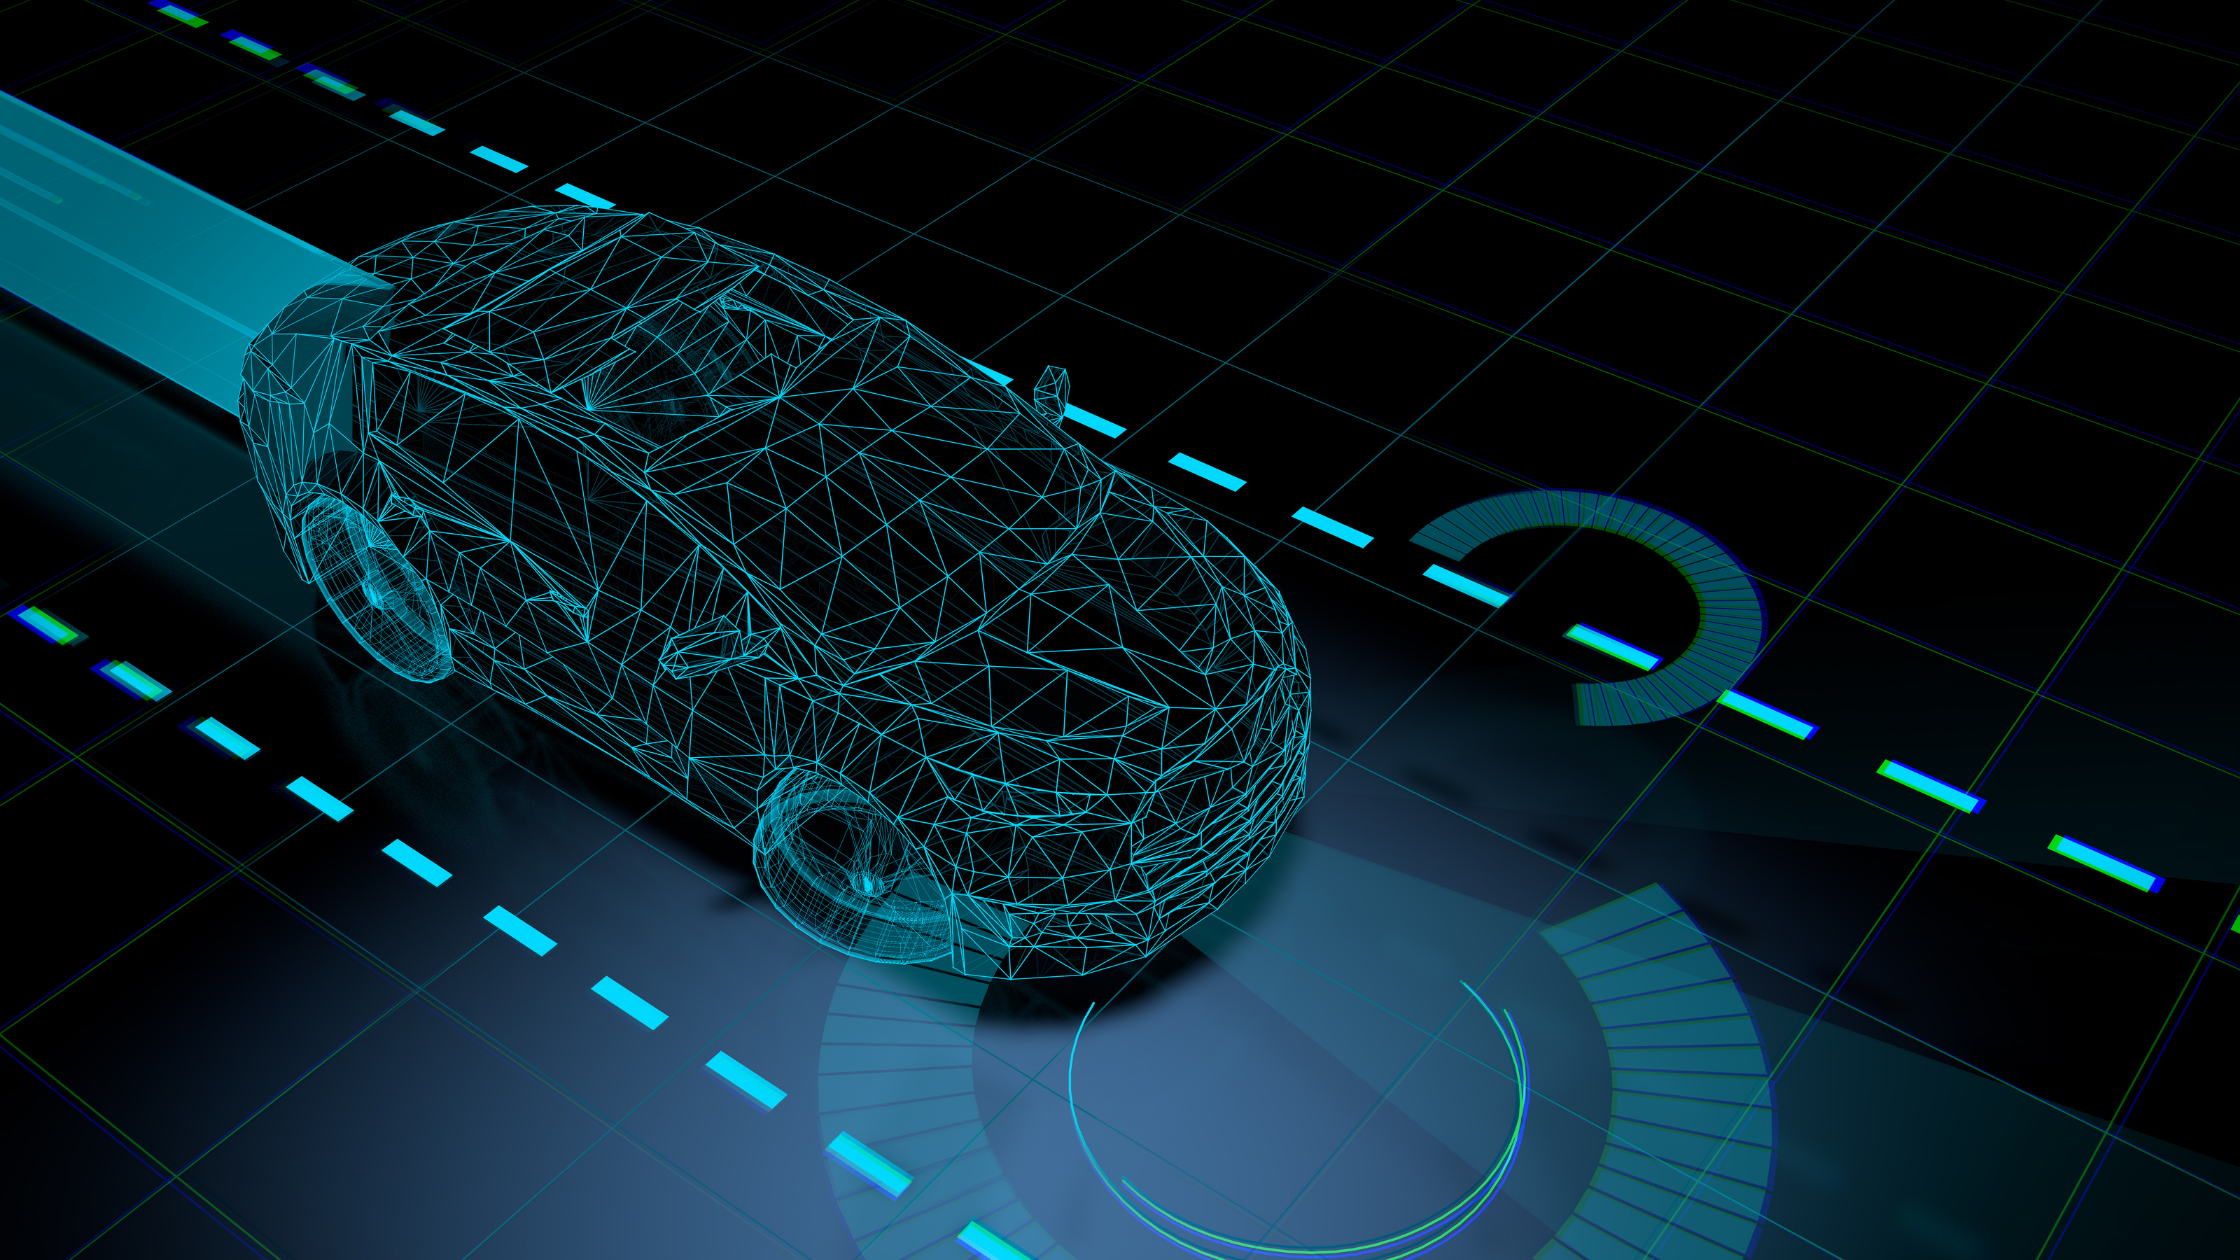 A Driving Force of the Future: Self-Driving Cars Keep Humans Safe